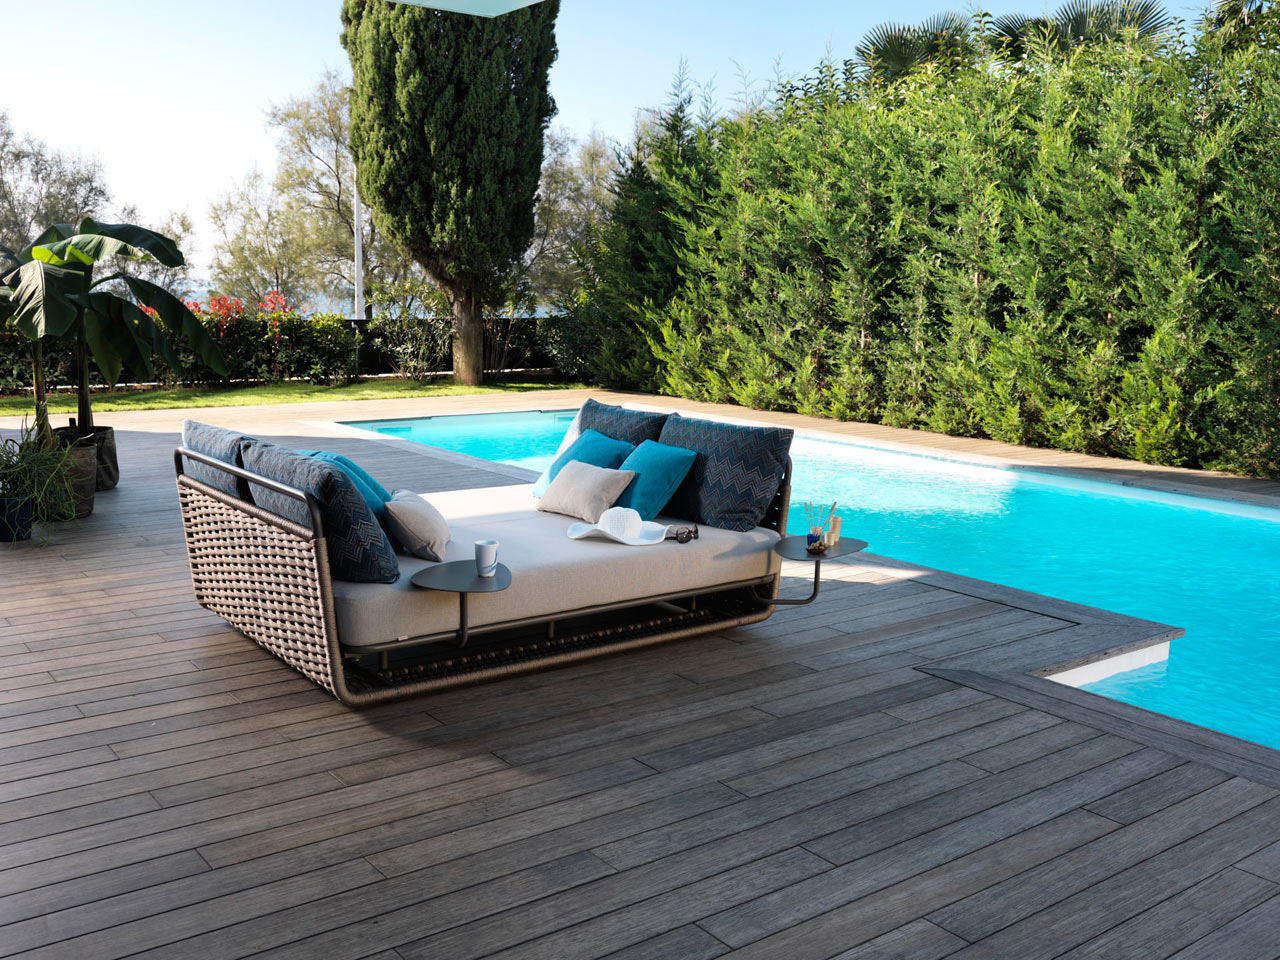 The Perfect Daybed for Outdoor Napping